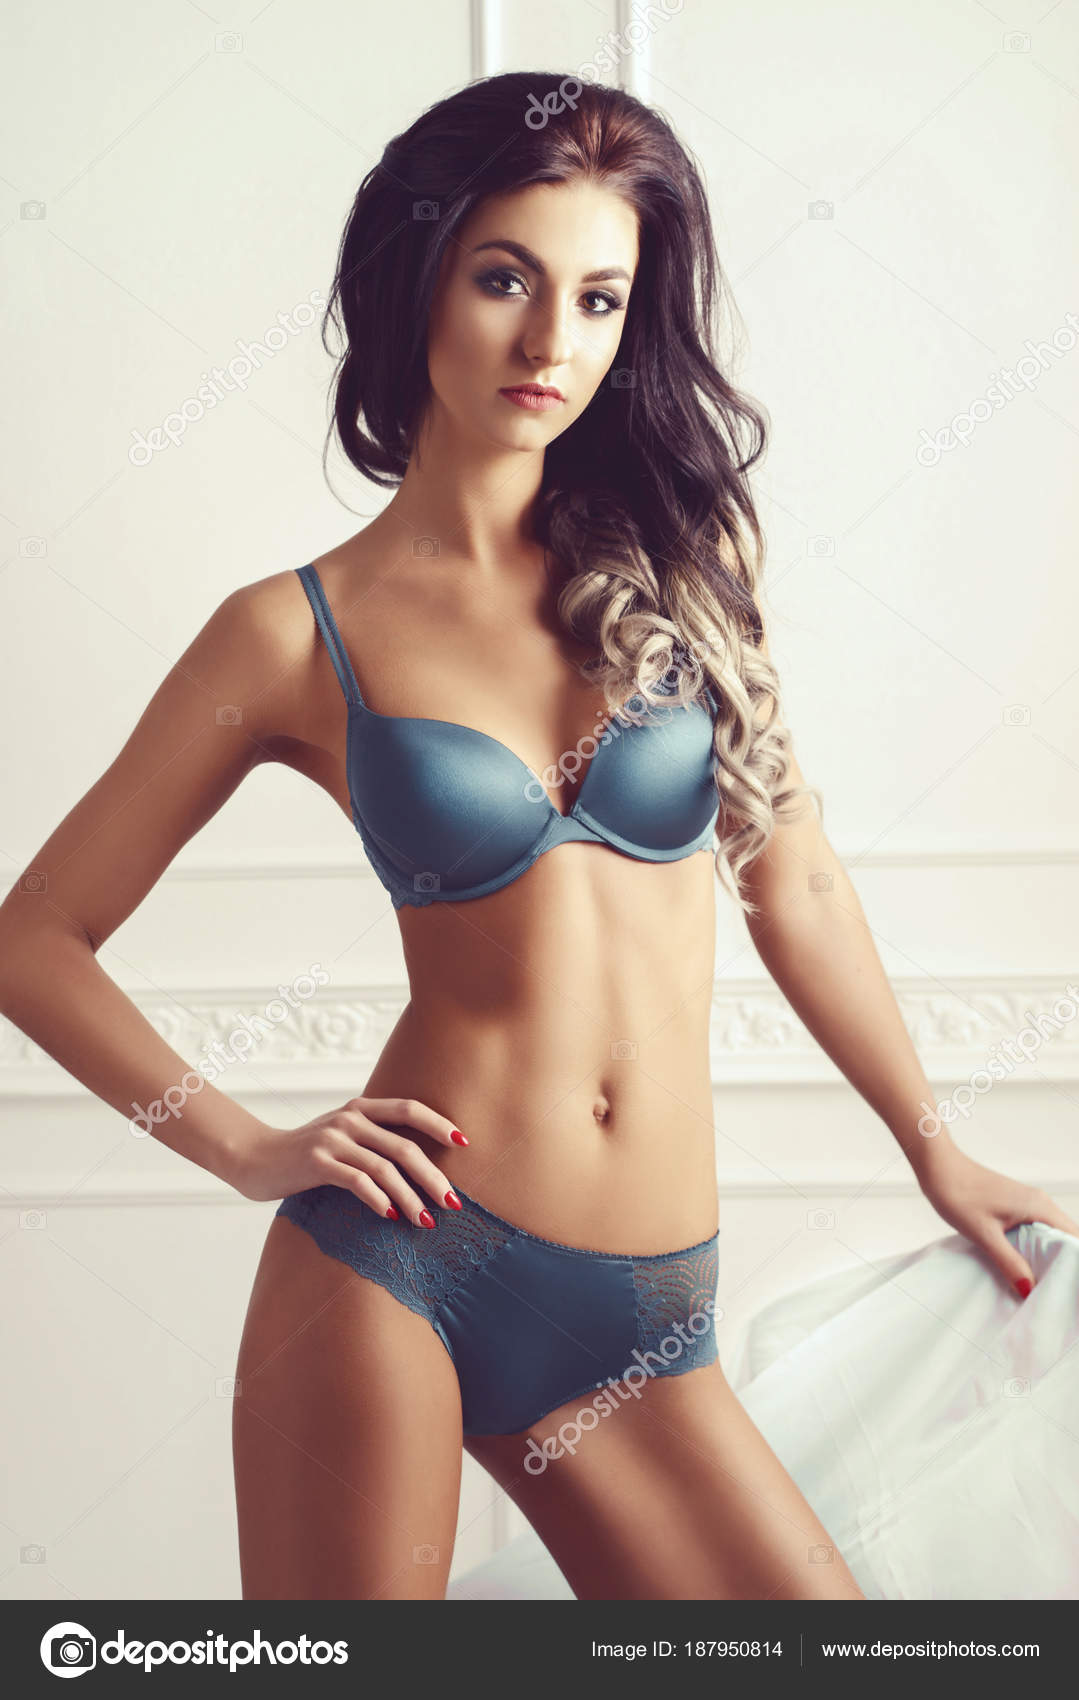 332c381dc Sexy Woman Beautiful Lingerie Girl Posing Underwear Vintage White Interior  — Stock Photo